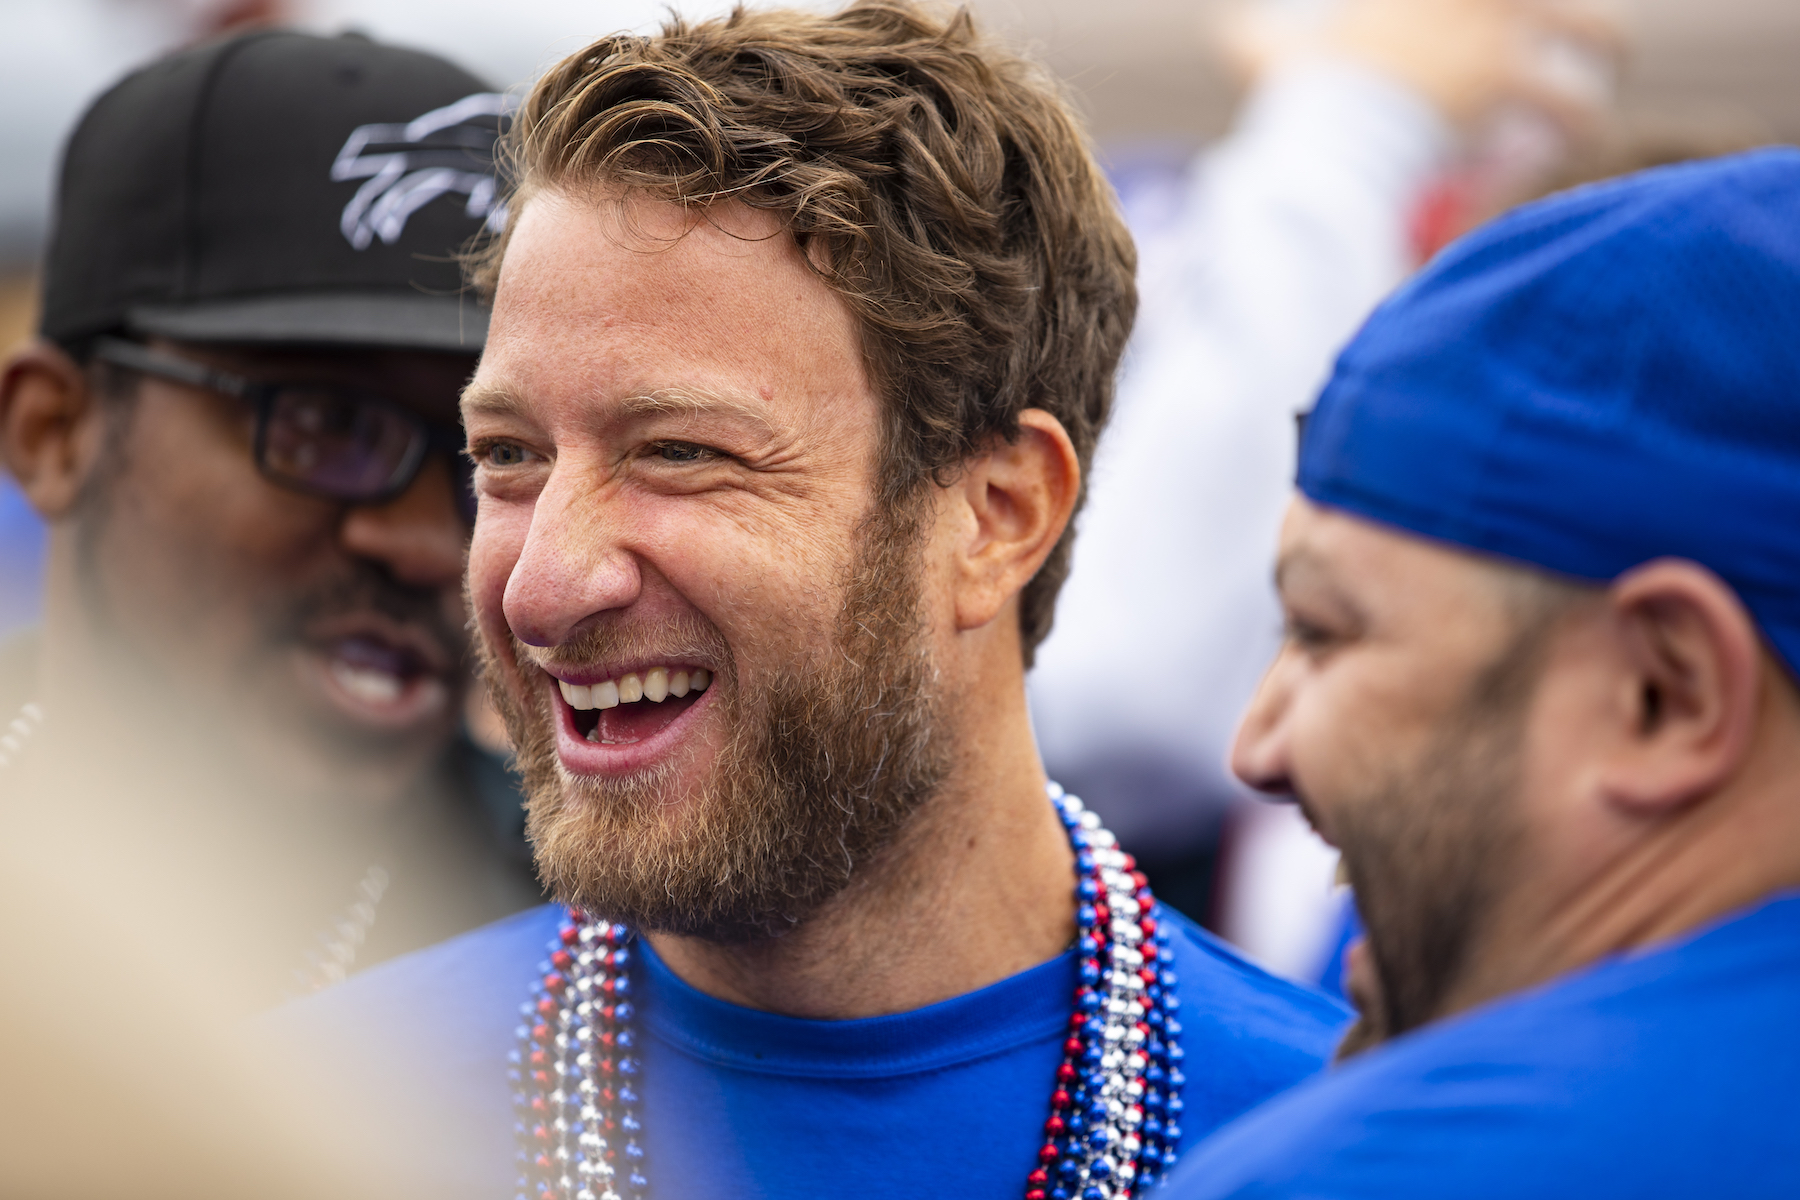 Barstool Sports founder Dave Portnoy attends a Buffalo Bills tailgate